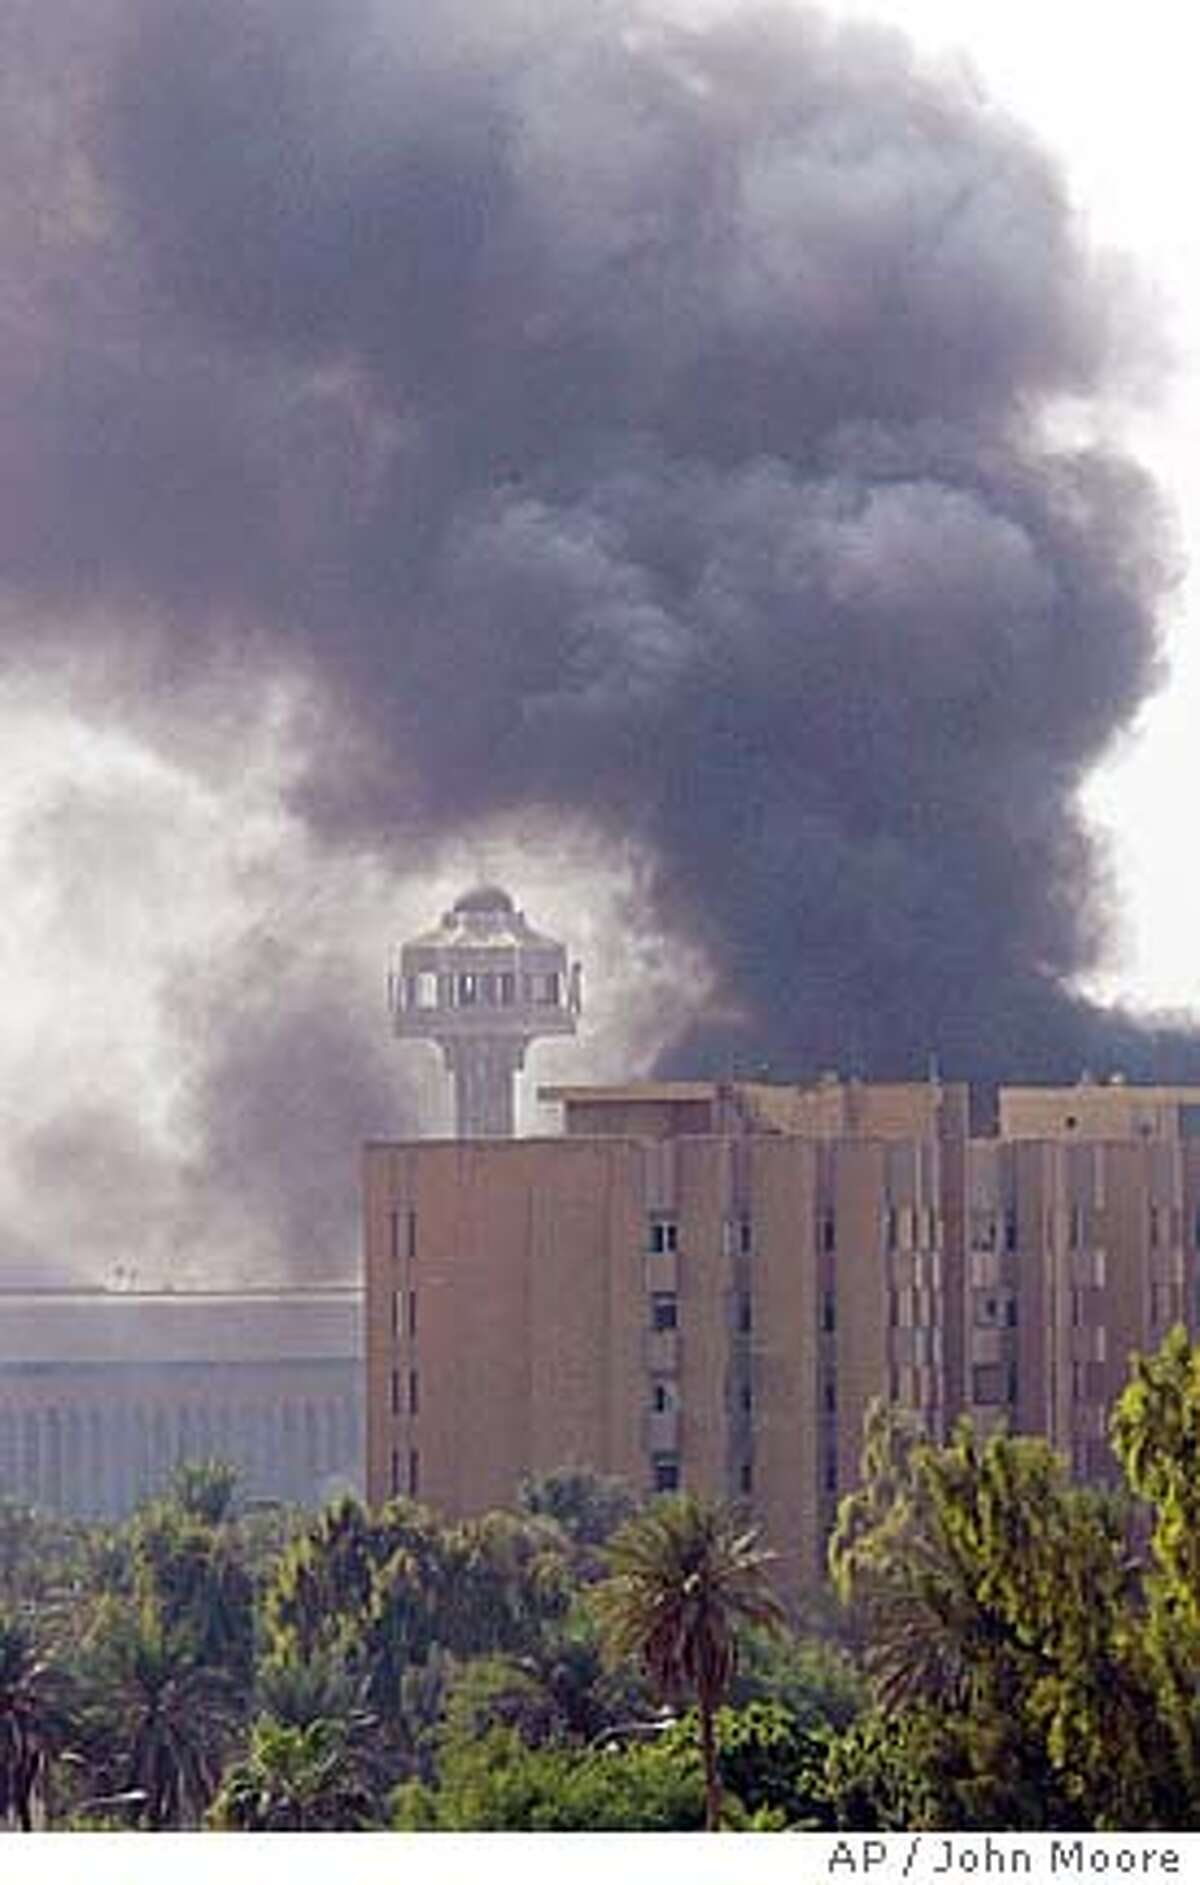 Heavy smoke rises following two explosions in the heavily fortified Green Zone in Baghdad, Iraq Thursday, Oct. 14, 2004. The Green Zone is home to the U.S. Embassy and Iraqi government offices.(AP Photo/John Moore)